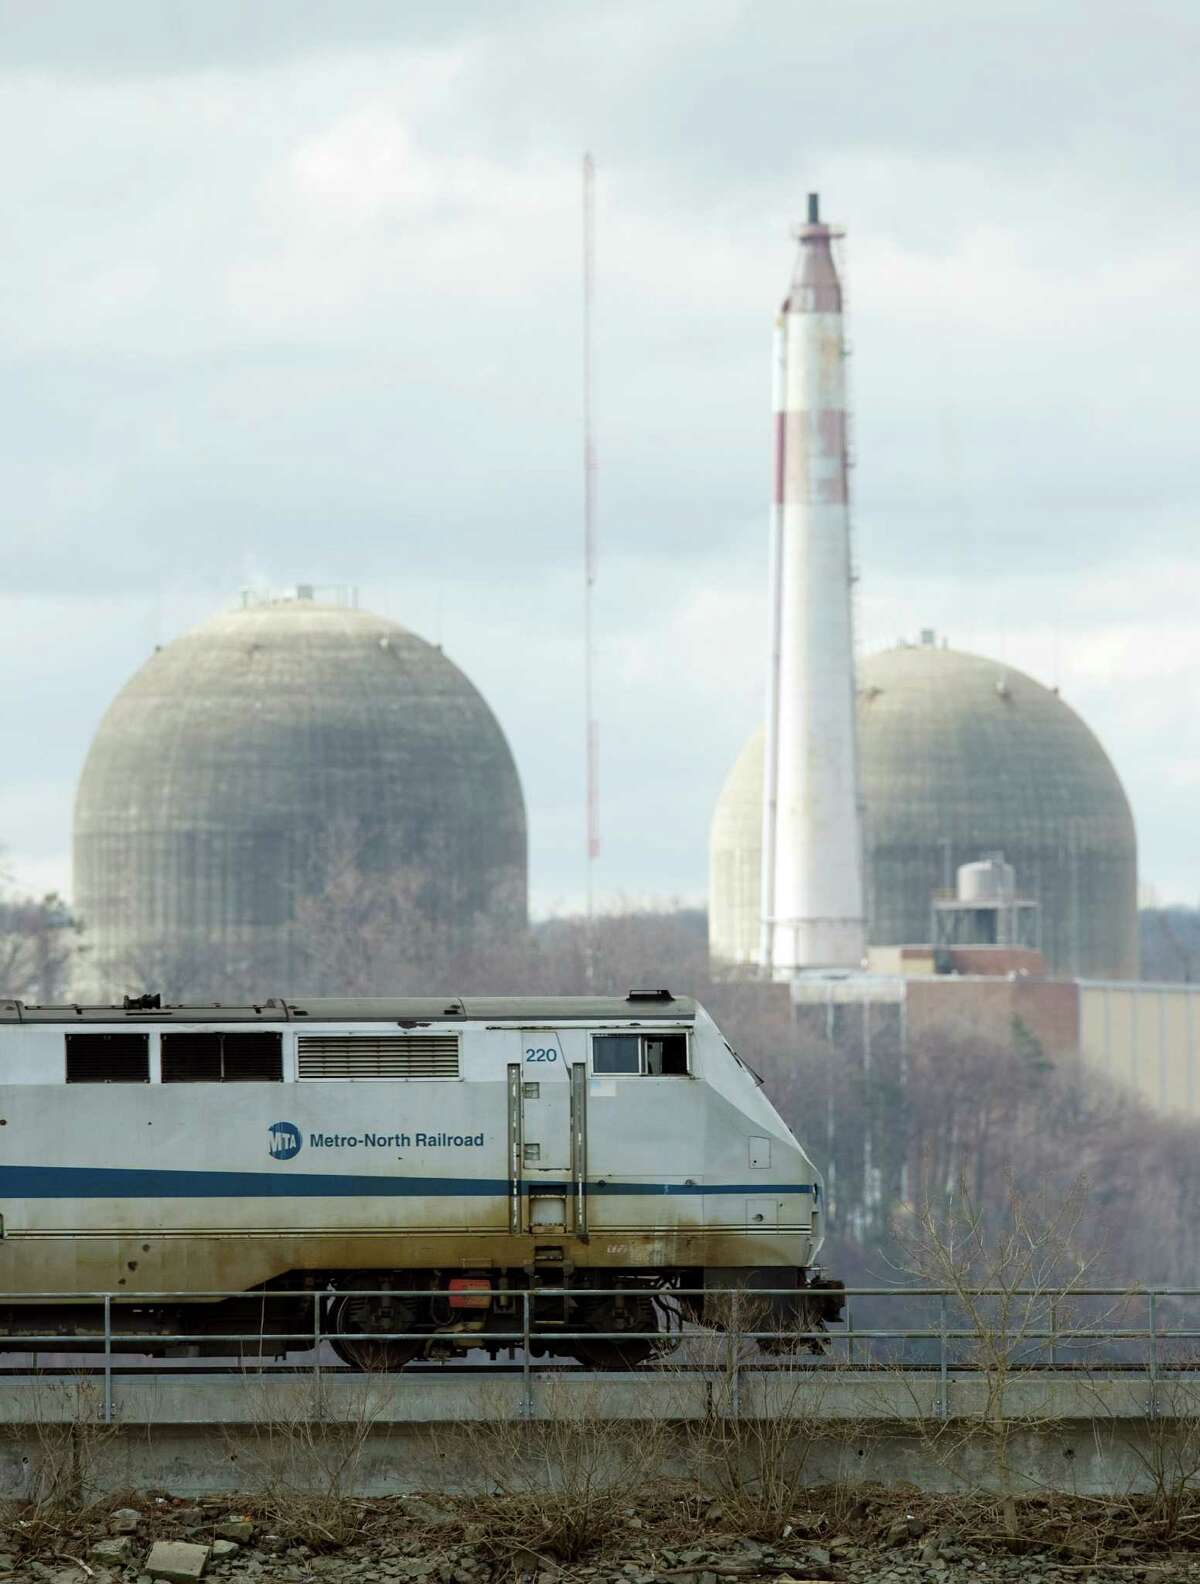 A train passes by in front of Indian Point Nuclear Power Plant on the Hudson River March 22, 2011 in Buchanan, NY. The Indian Point station, comprised of two operating nuclear reactors, sits atop the Ramapo fault line, causing concern for some residents in the wake of the Japan disaster. AFP PHOTO / DON EMMERT (Photo credit should read DON EMMERT/AFP/Getty Images)